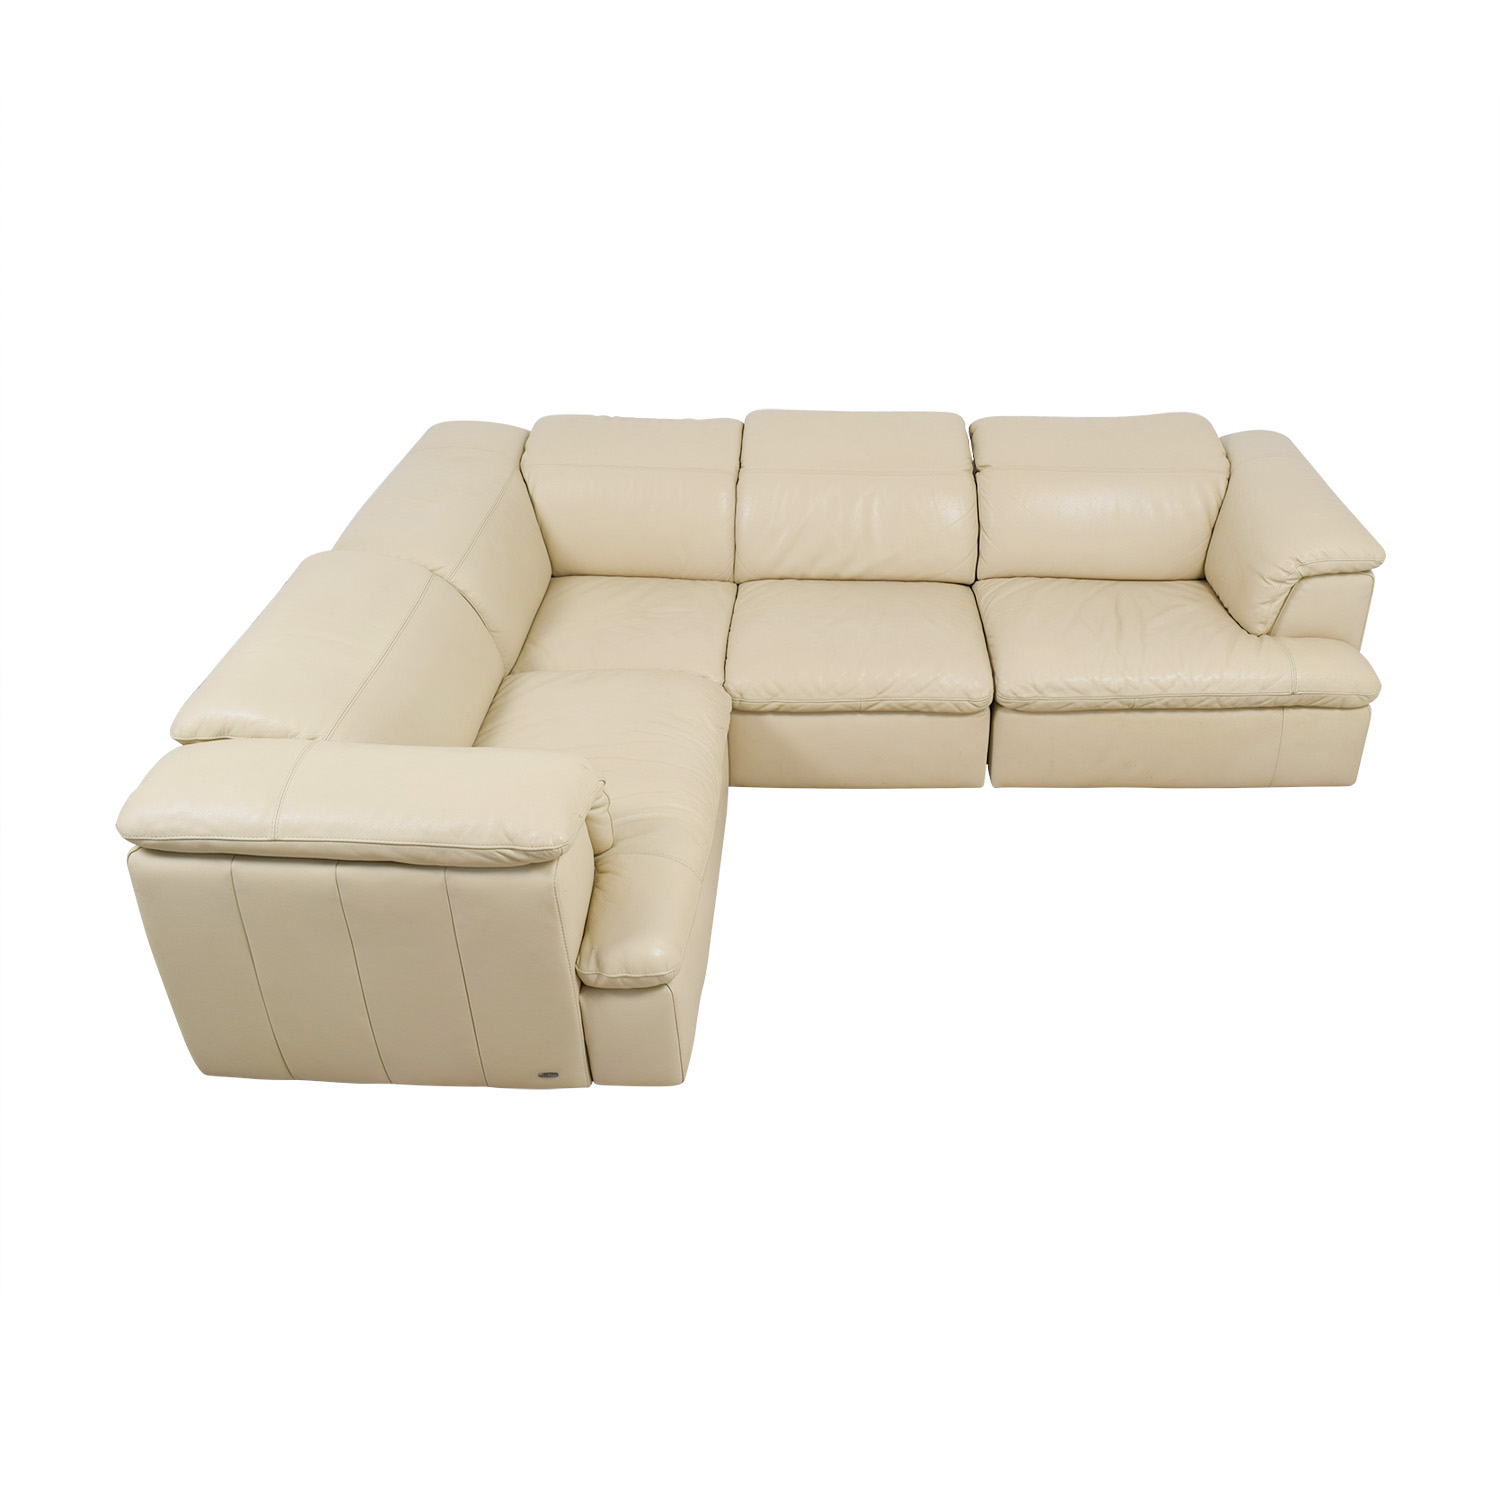 Natuzzi Vanilla Italian Leather